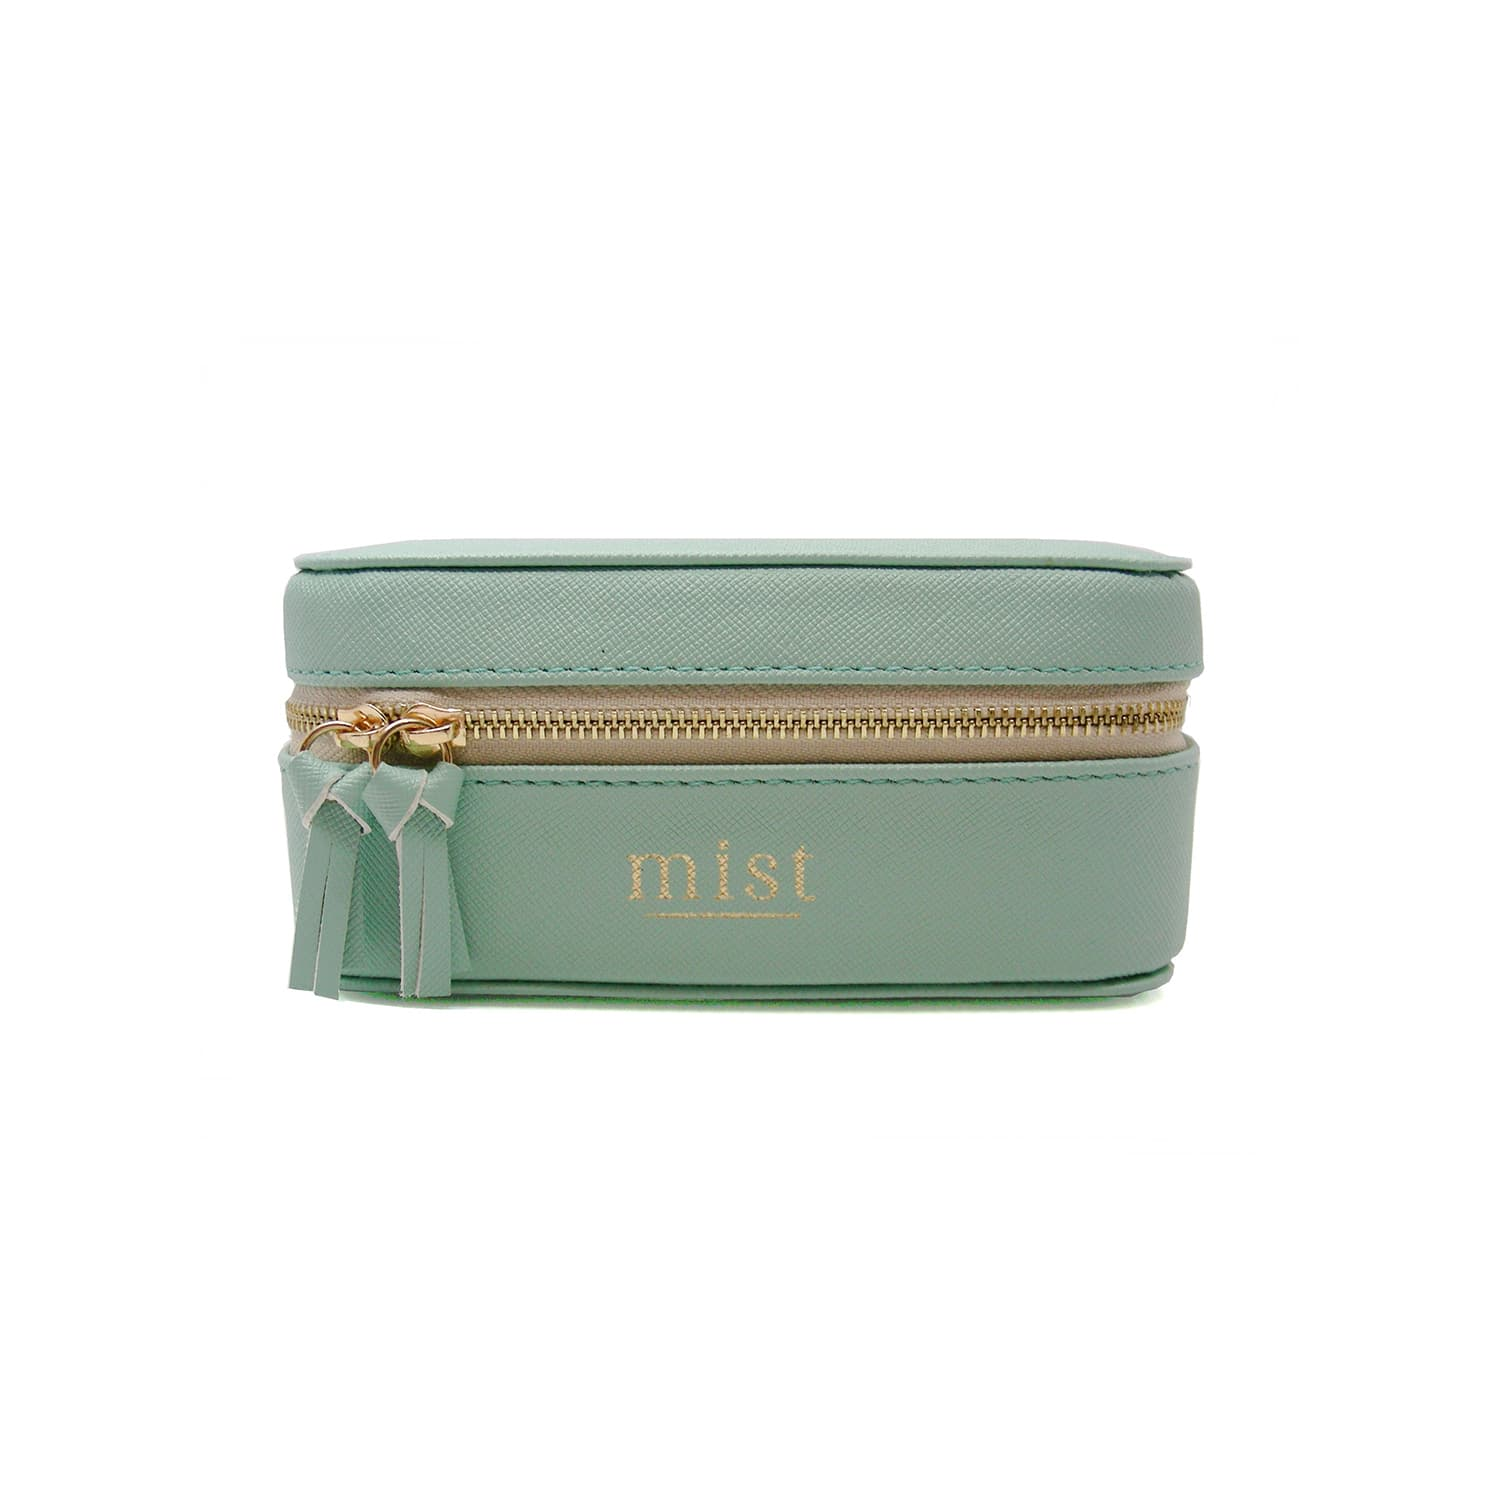 jewelry bag mint green